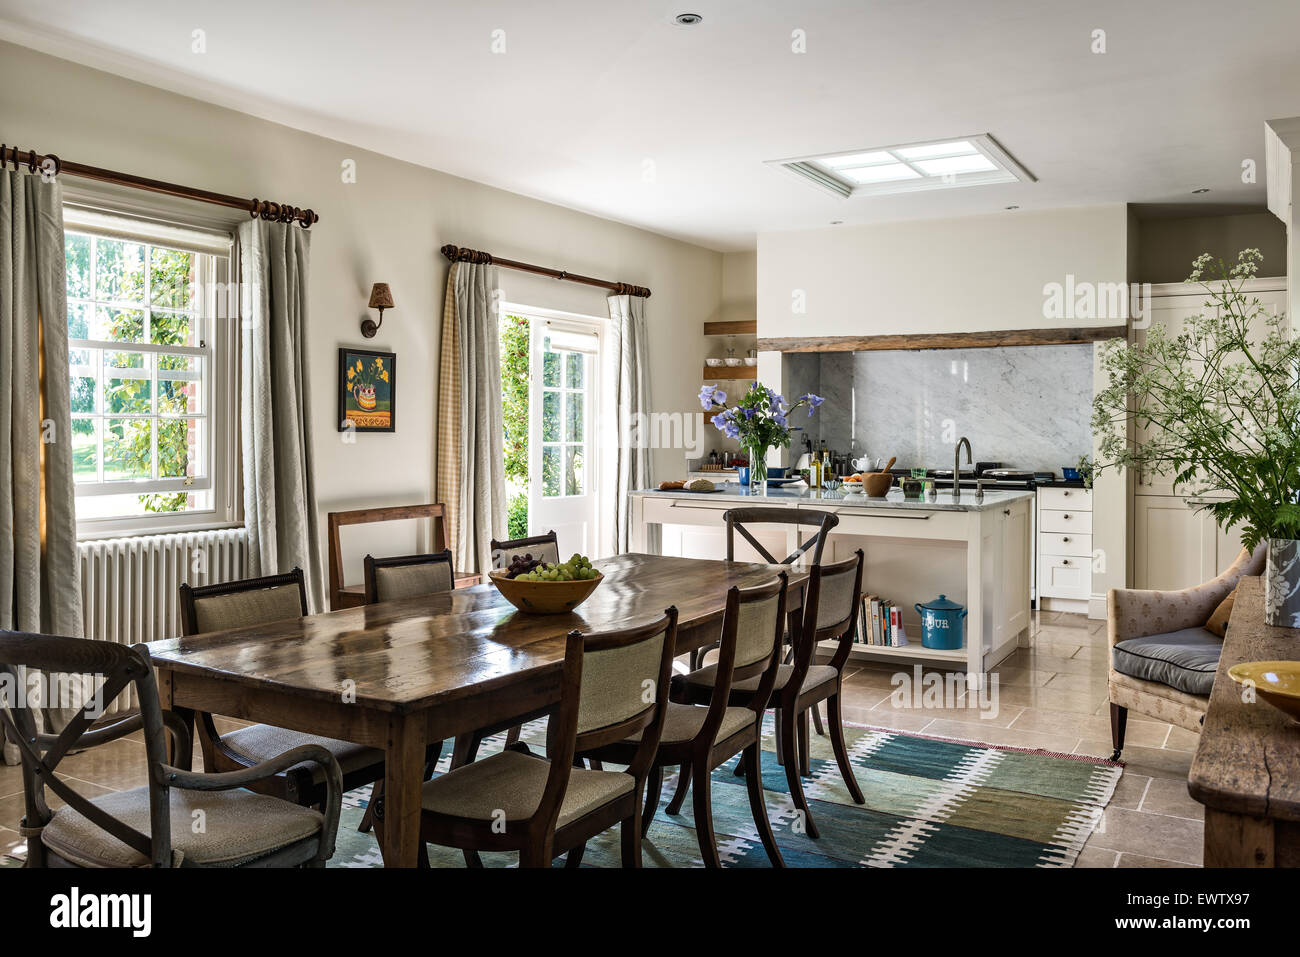 Antique Dining Table With Chairs In Open Plan Kitchen